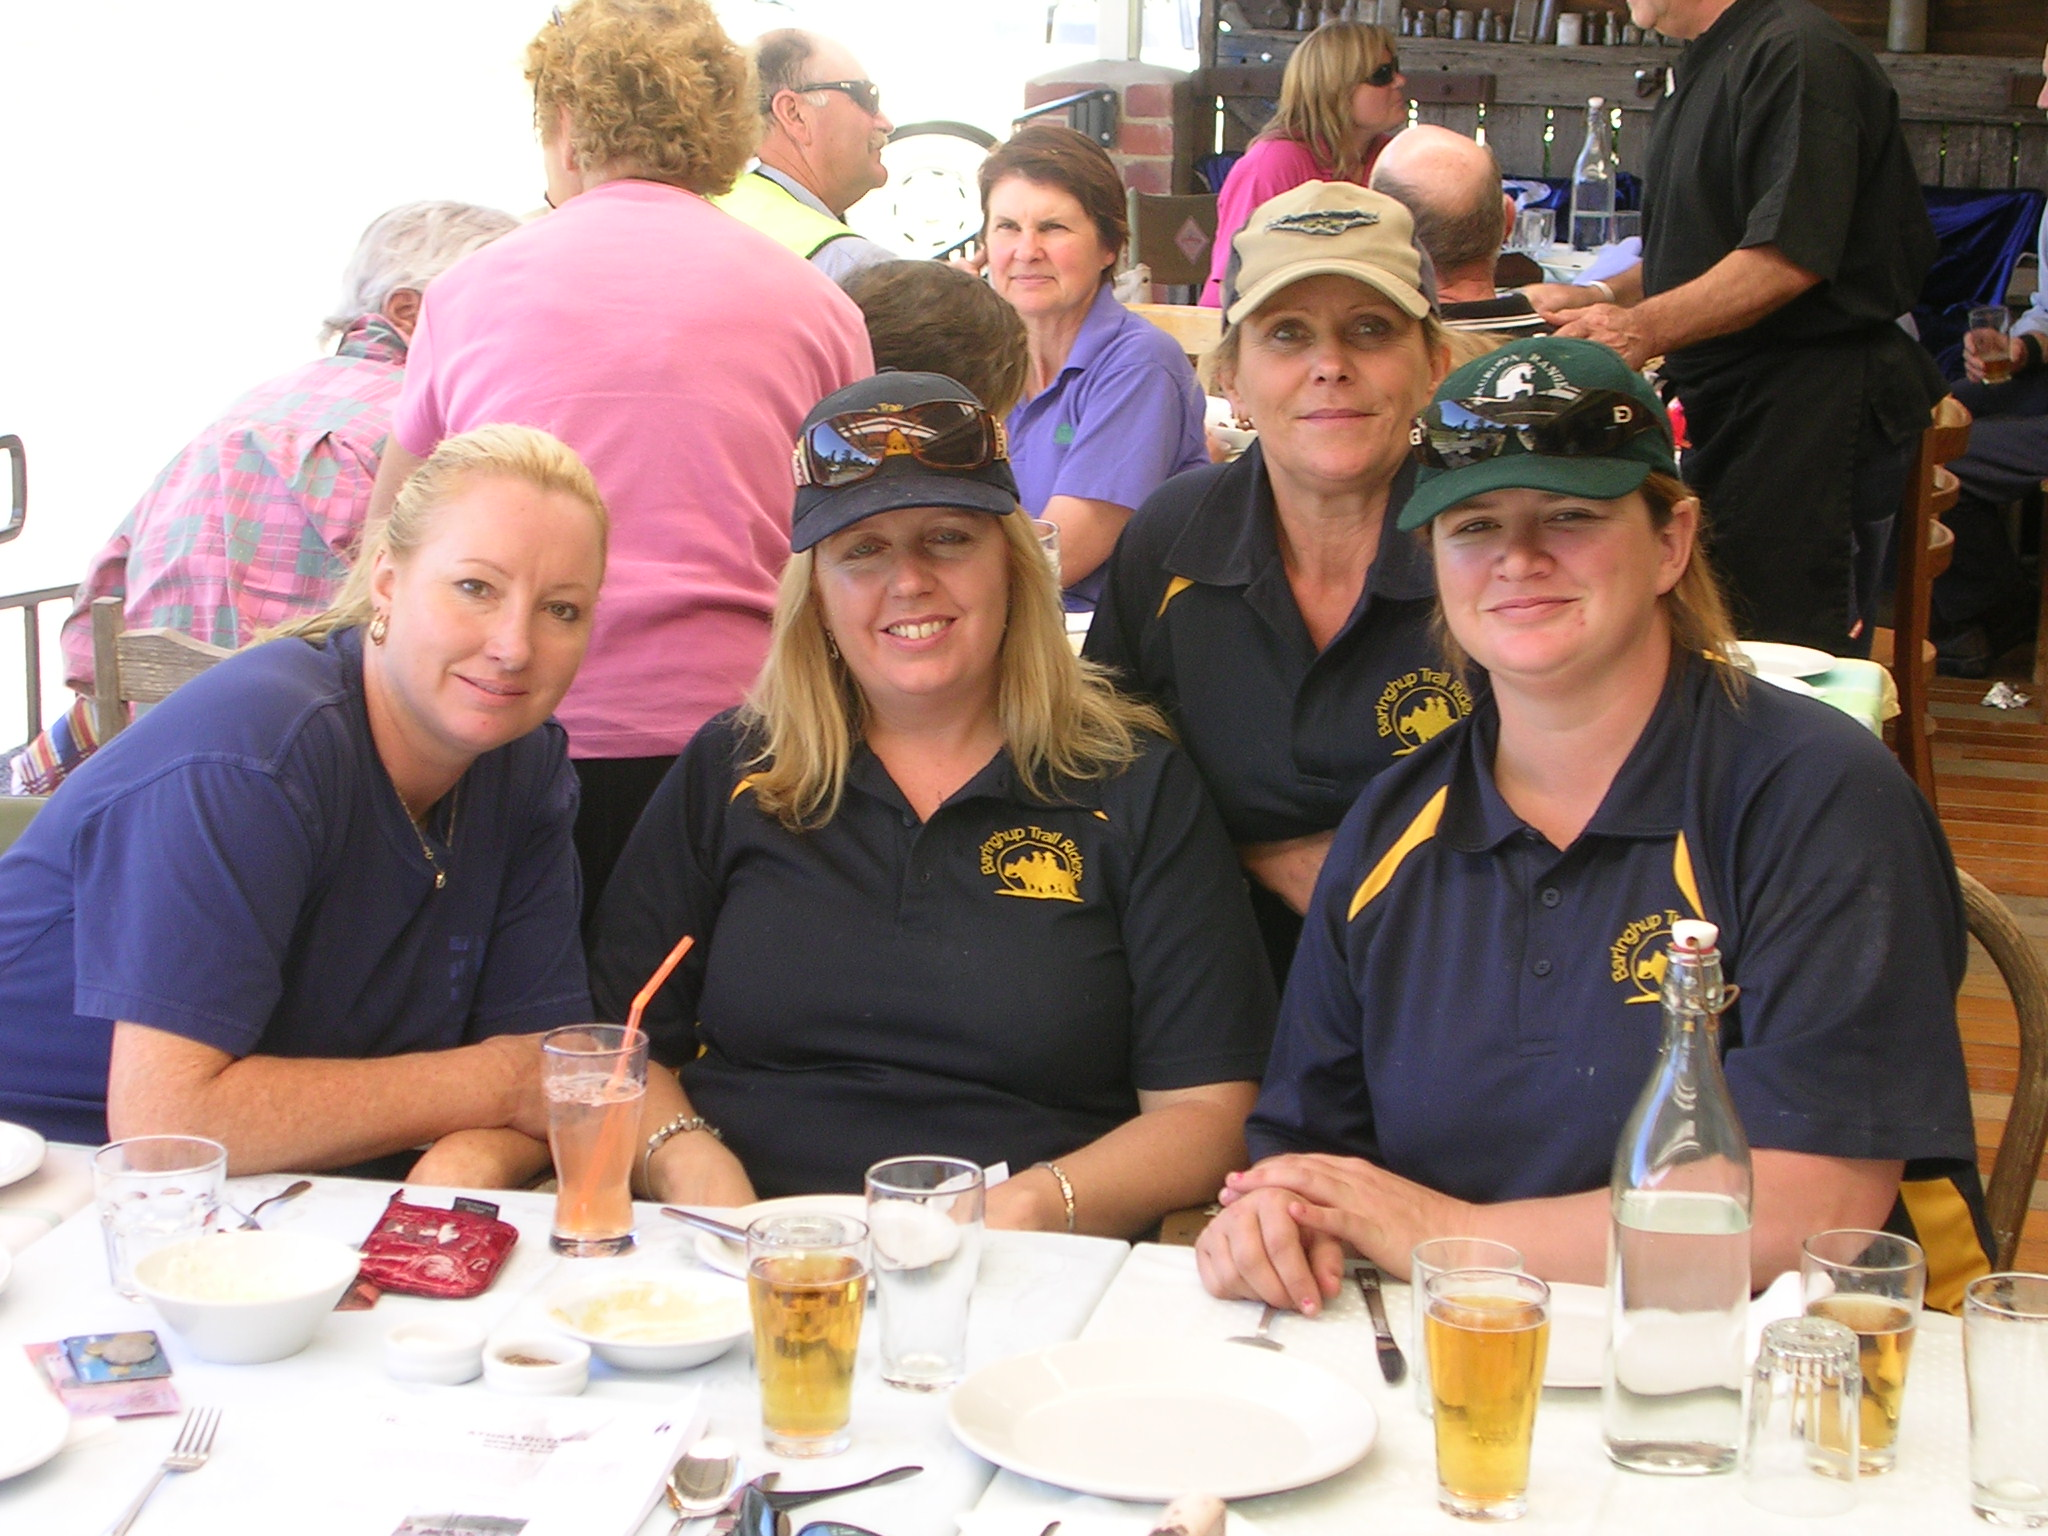 Some of the BTR faithfull at lunch. Babs, Sharon, Evelyn & Chantelle